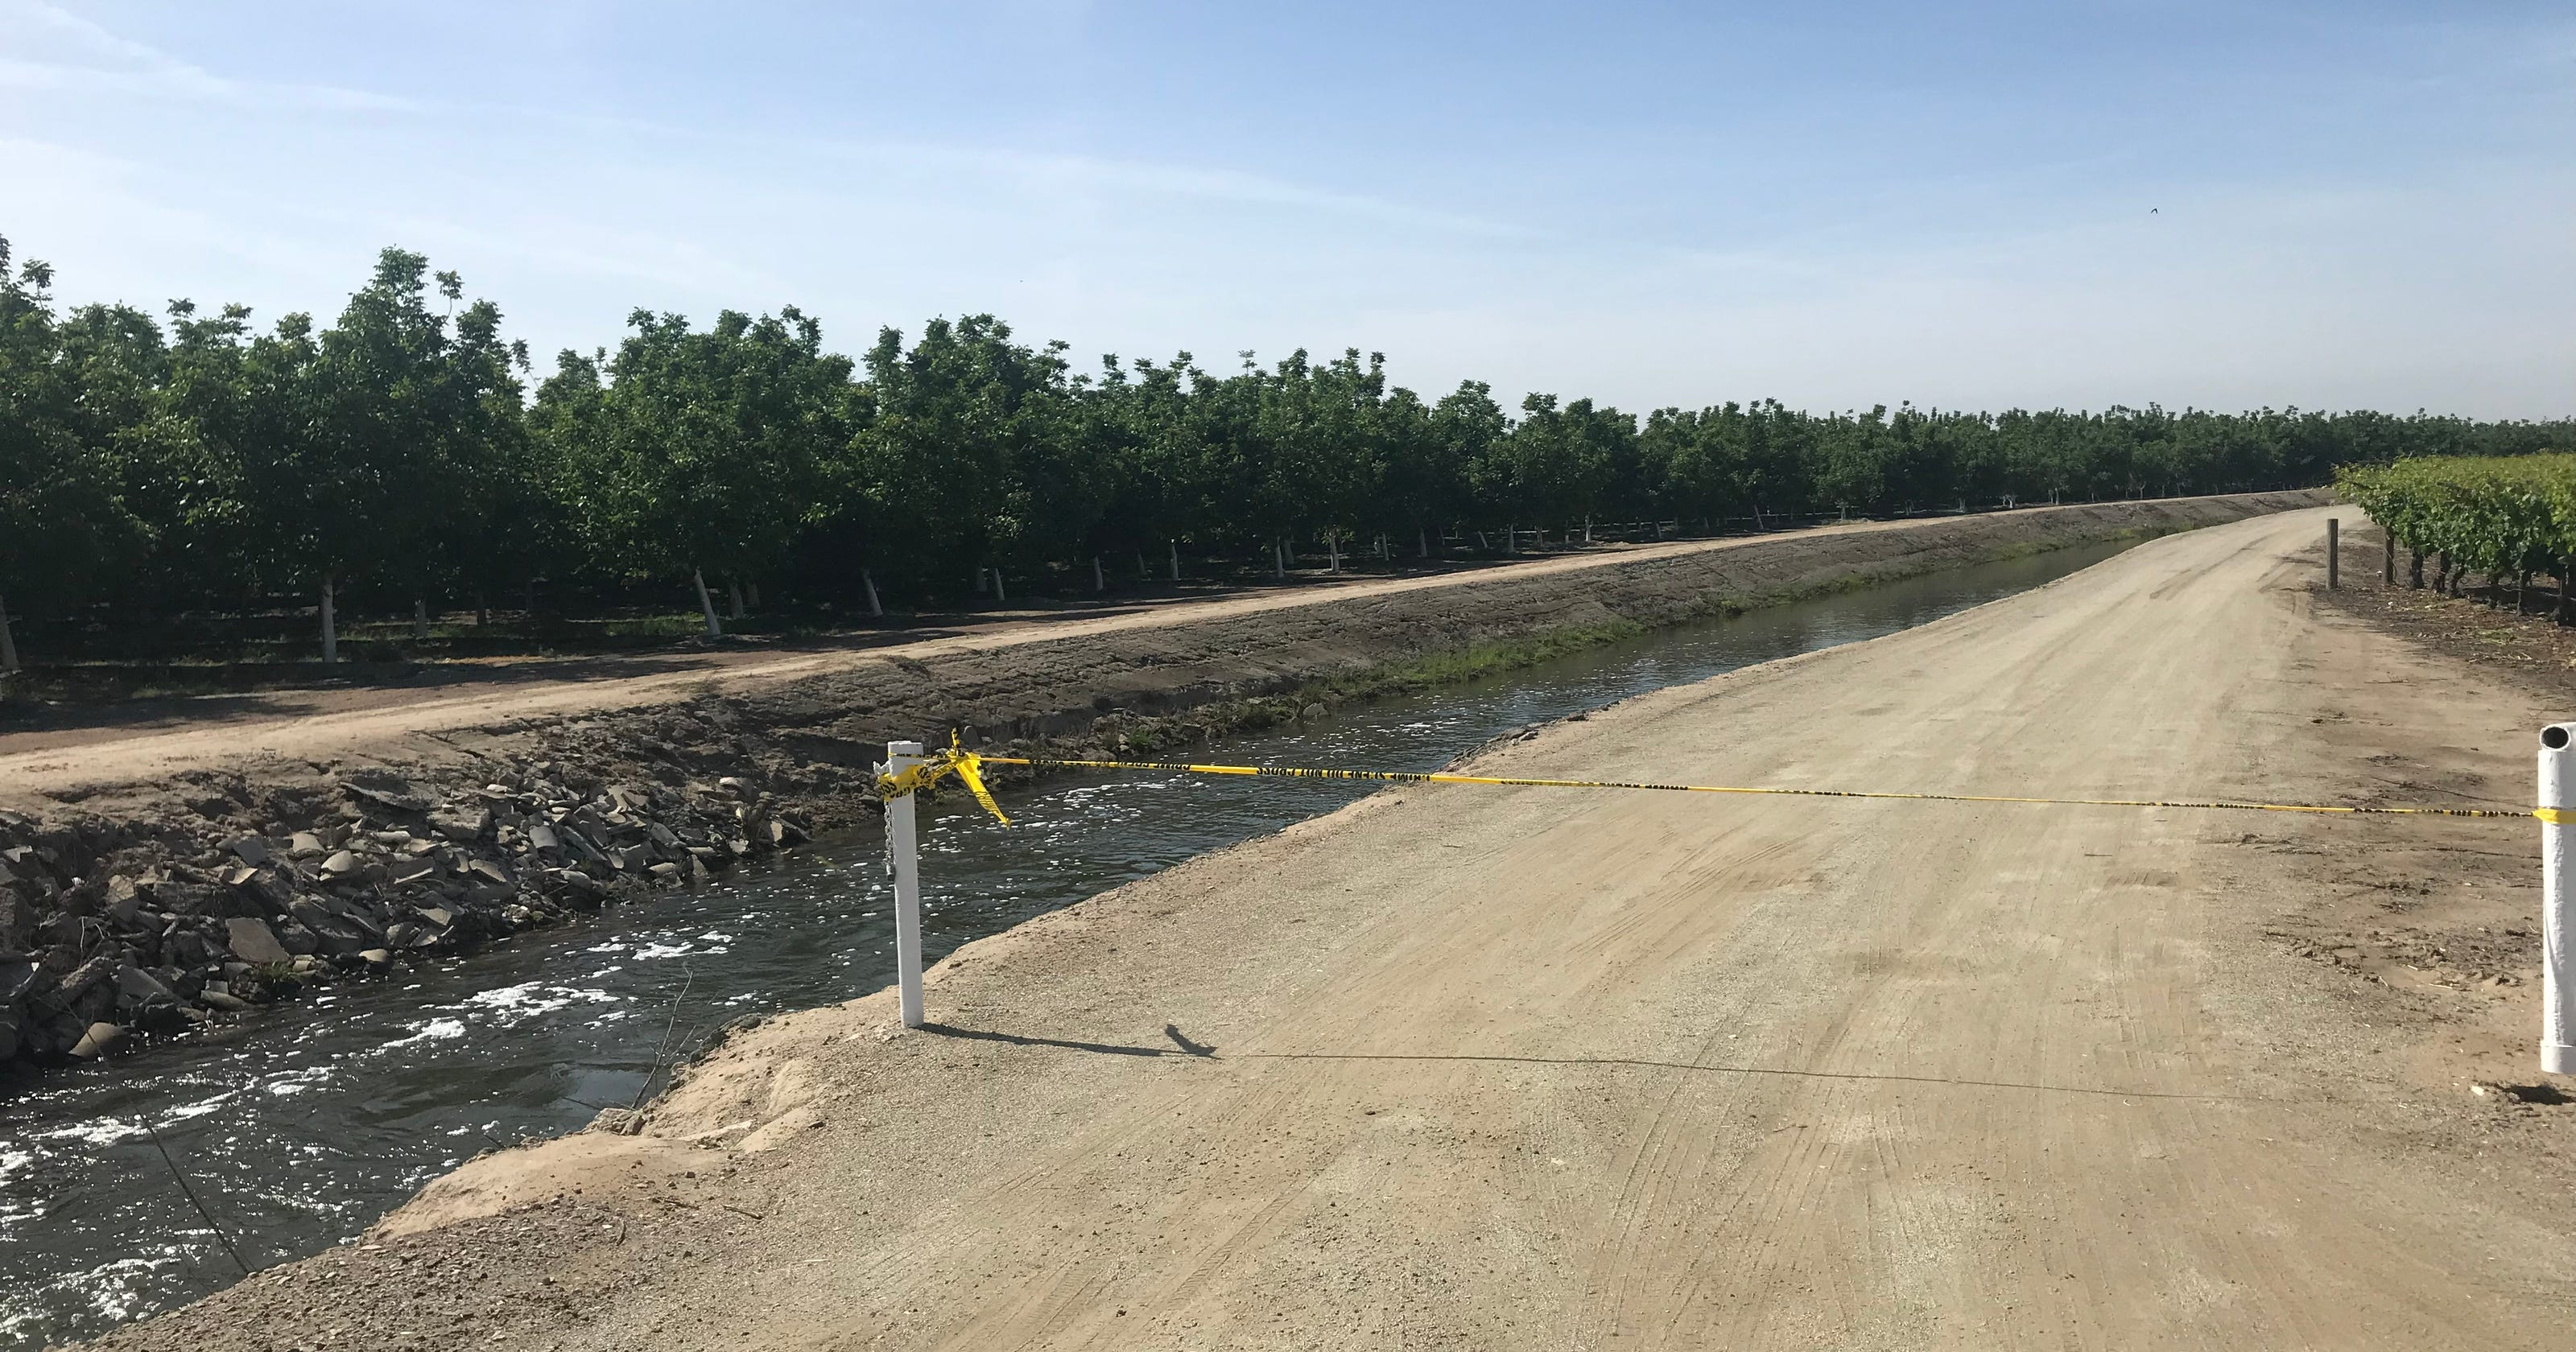 Sheriff's detectives rule body found in Tulare homicide